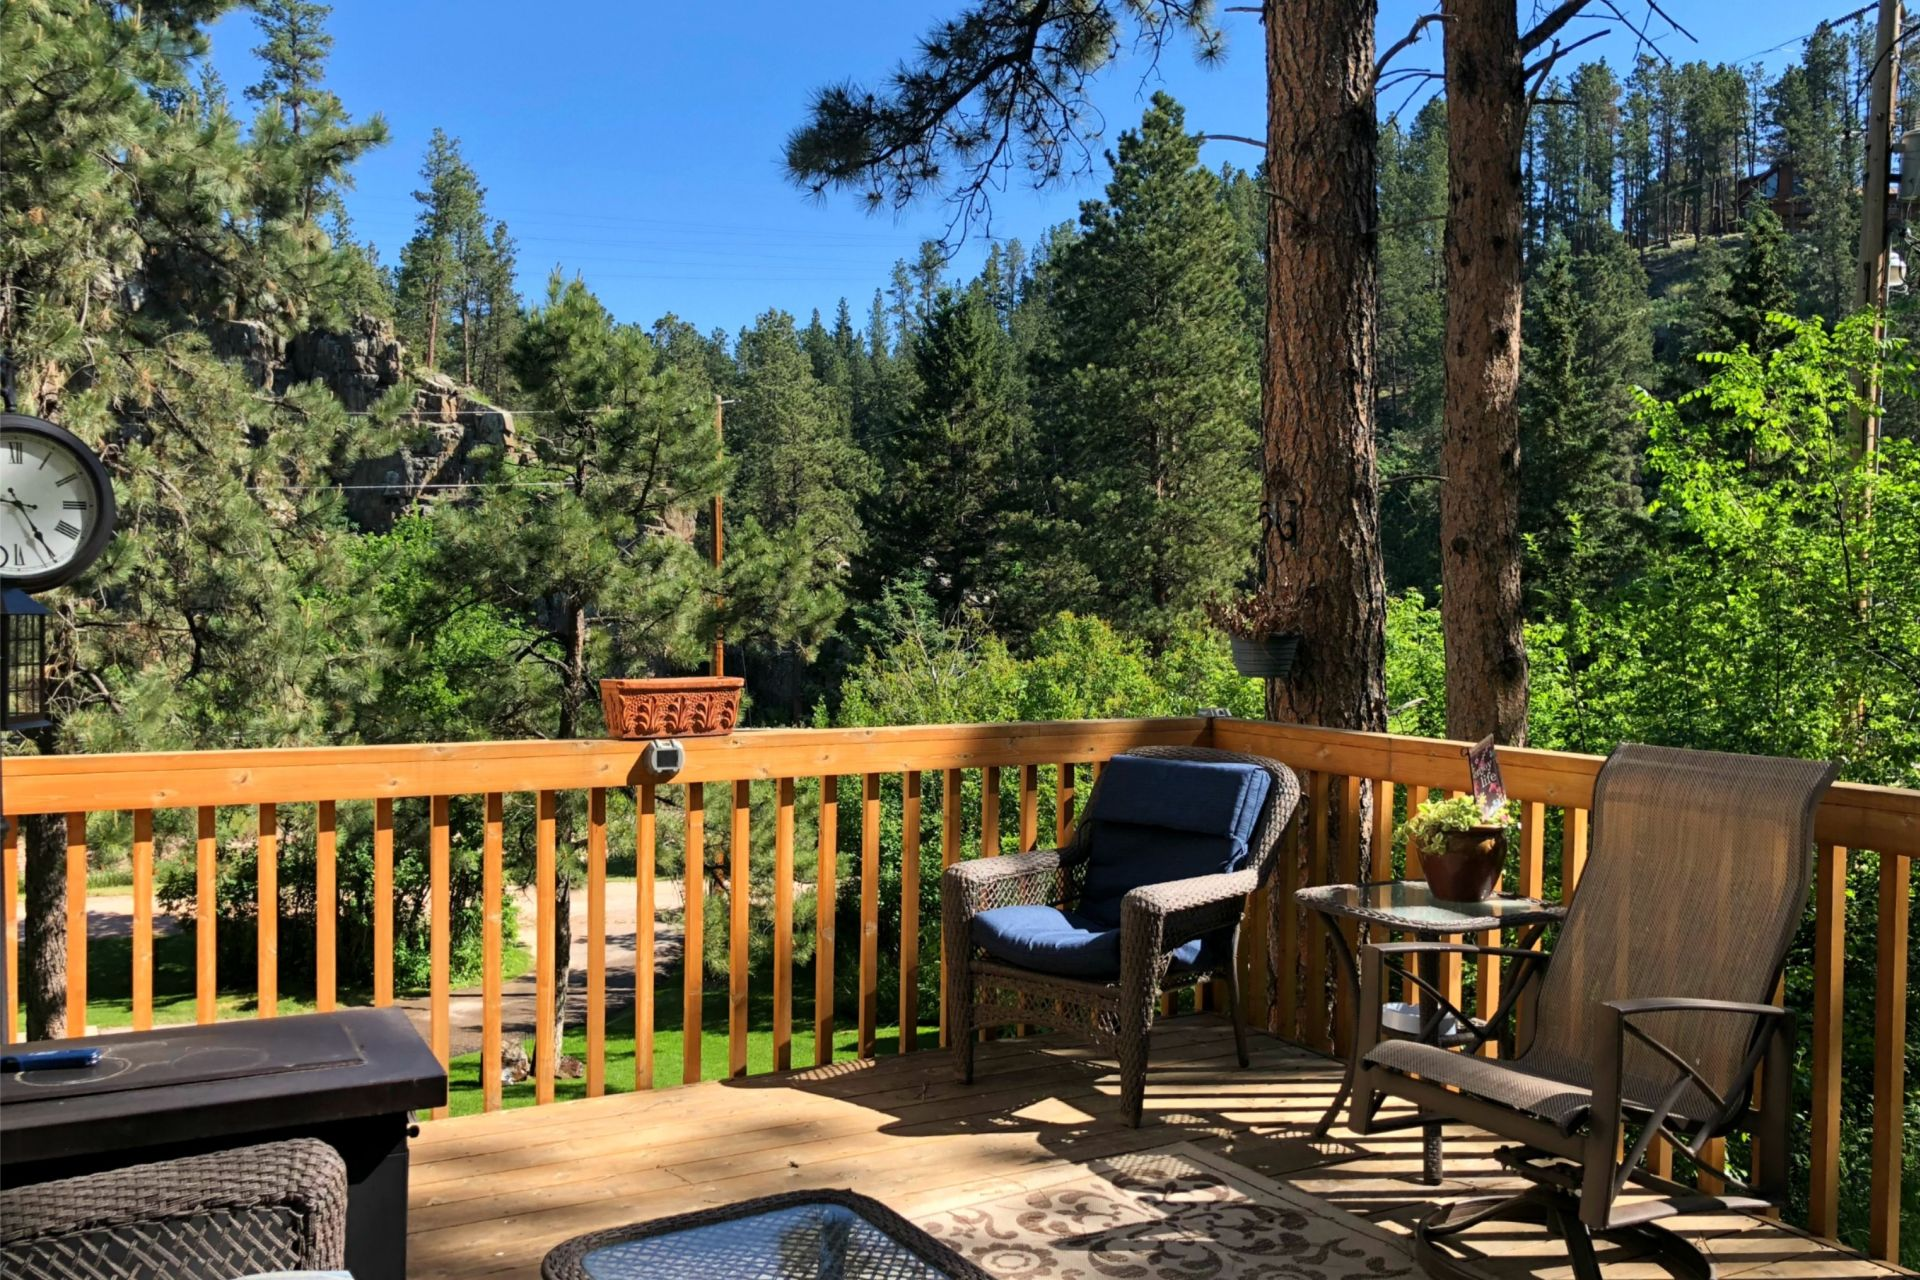 Creek side Property FOR SALE in Rimrock Canyon!